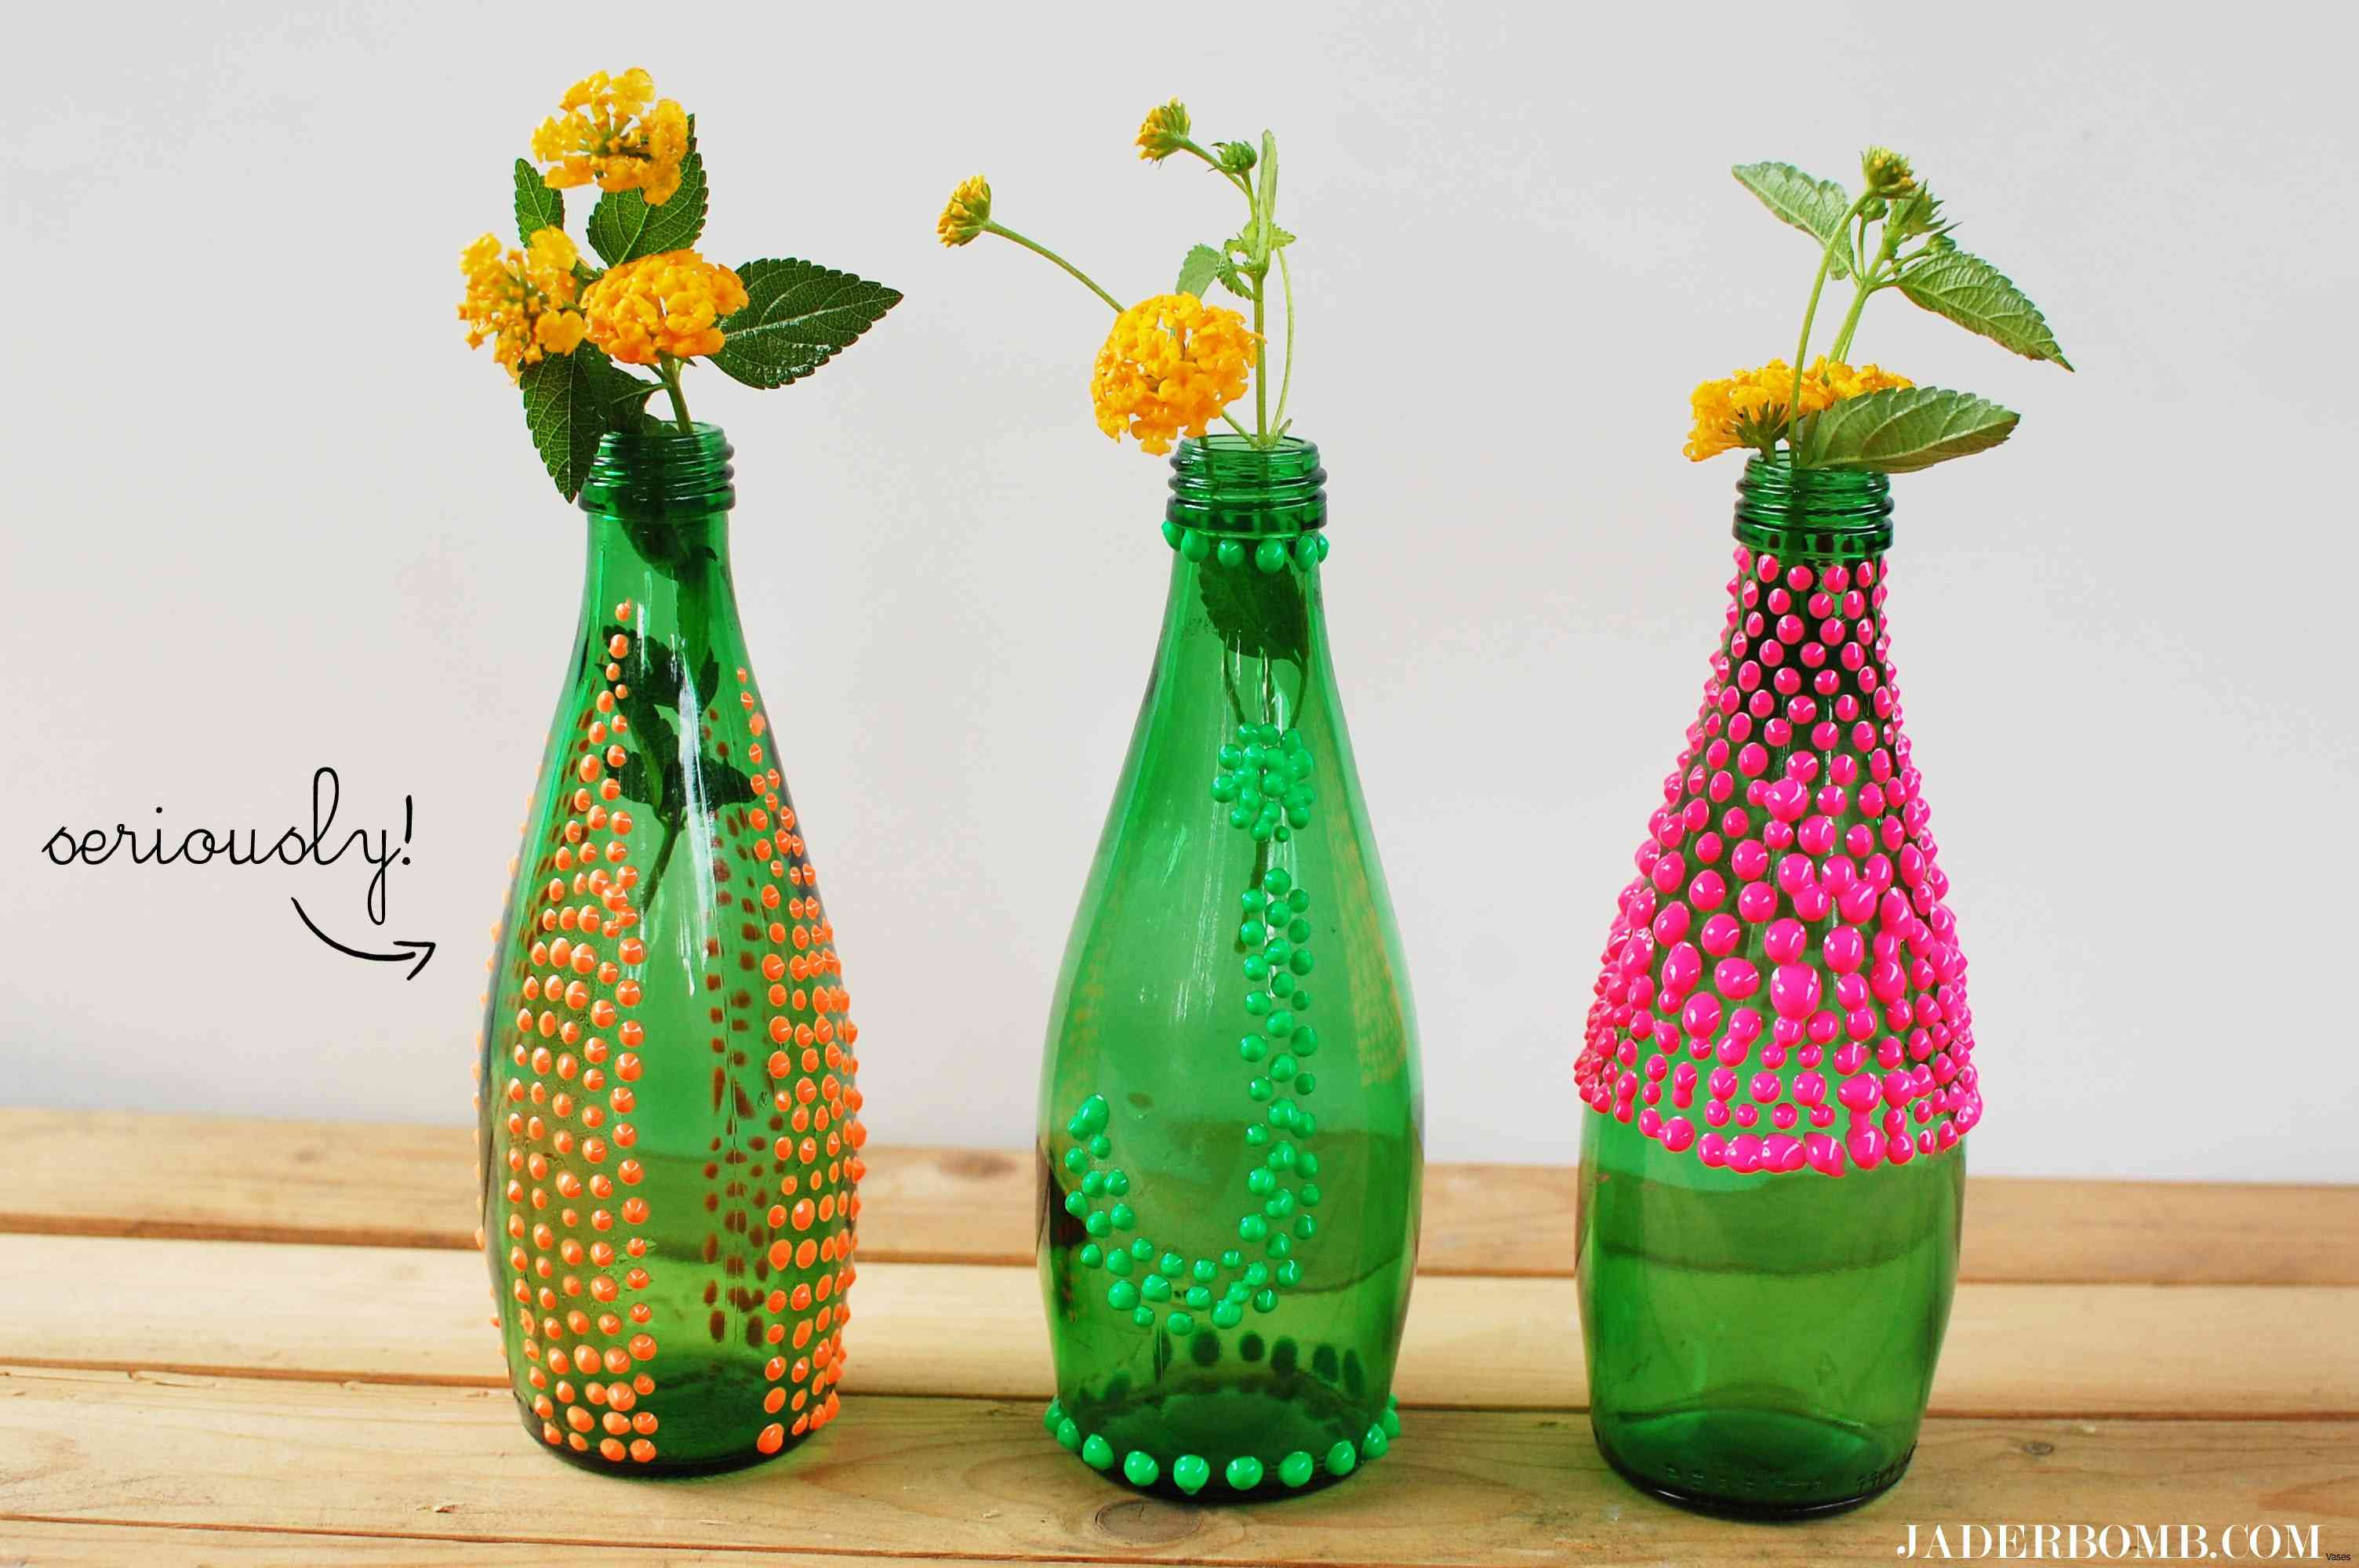 painting glass vases of wide glass vase image paint a picture luxury h vases paint vase i 0d within wide glass vase image paint a picture luxury h vases paint vase i 0d with glue